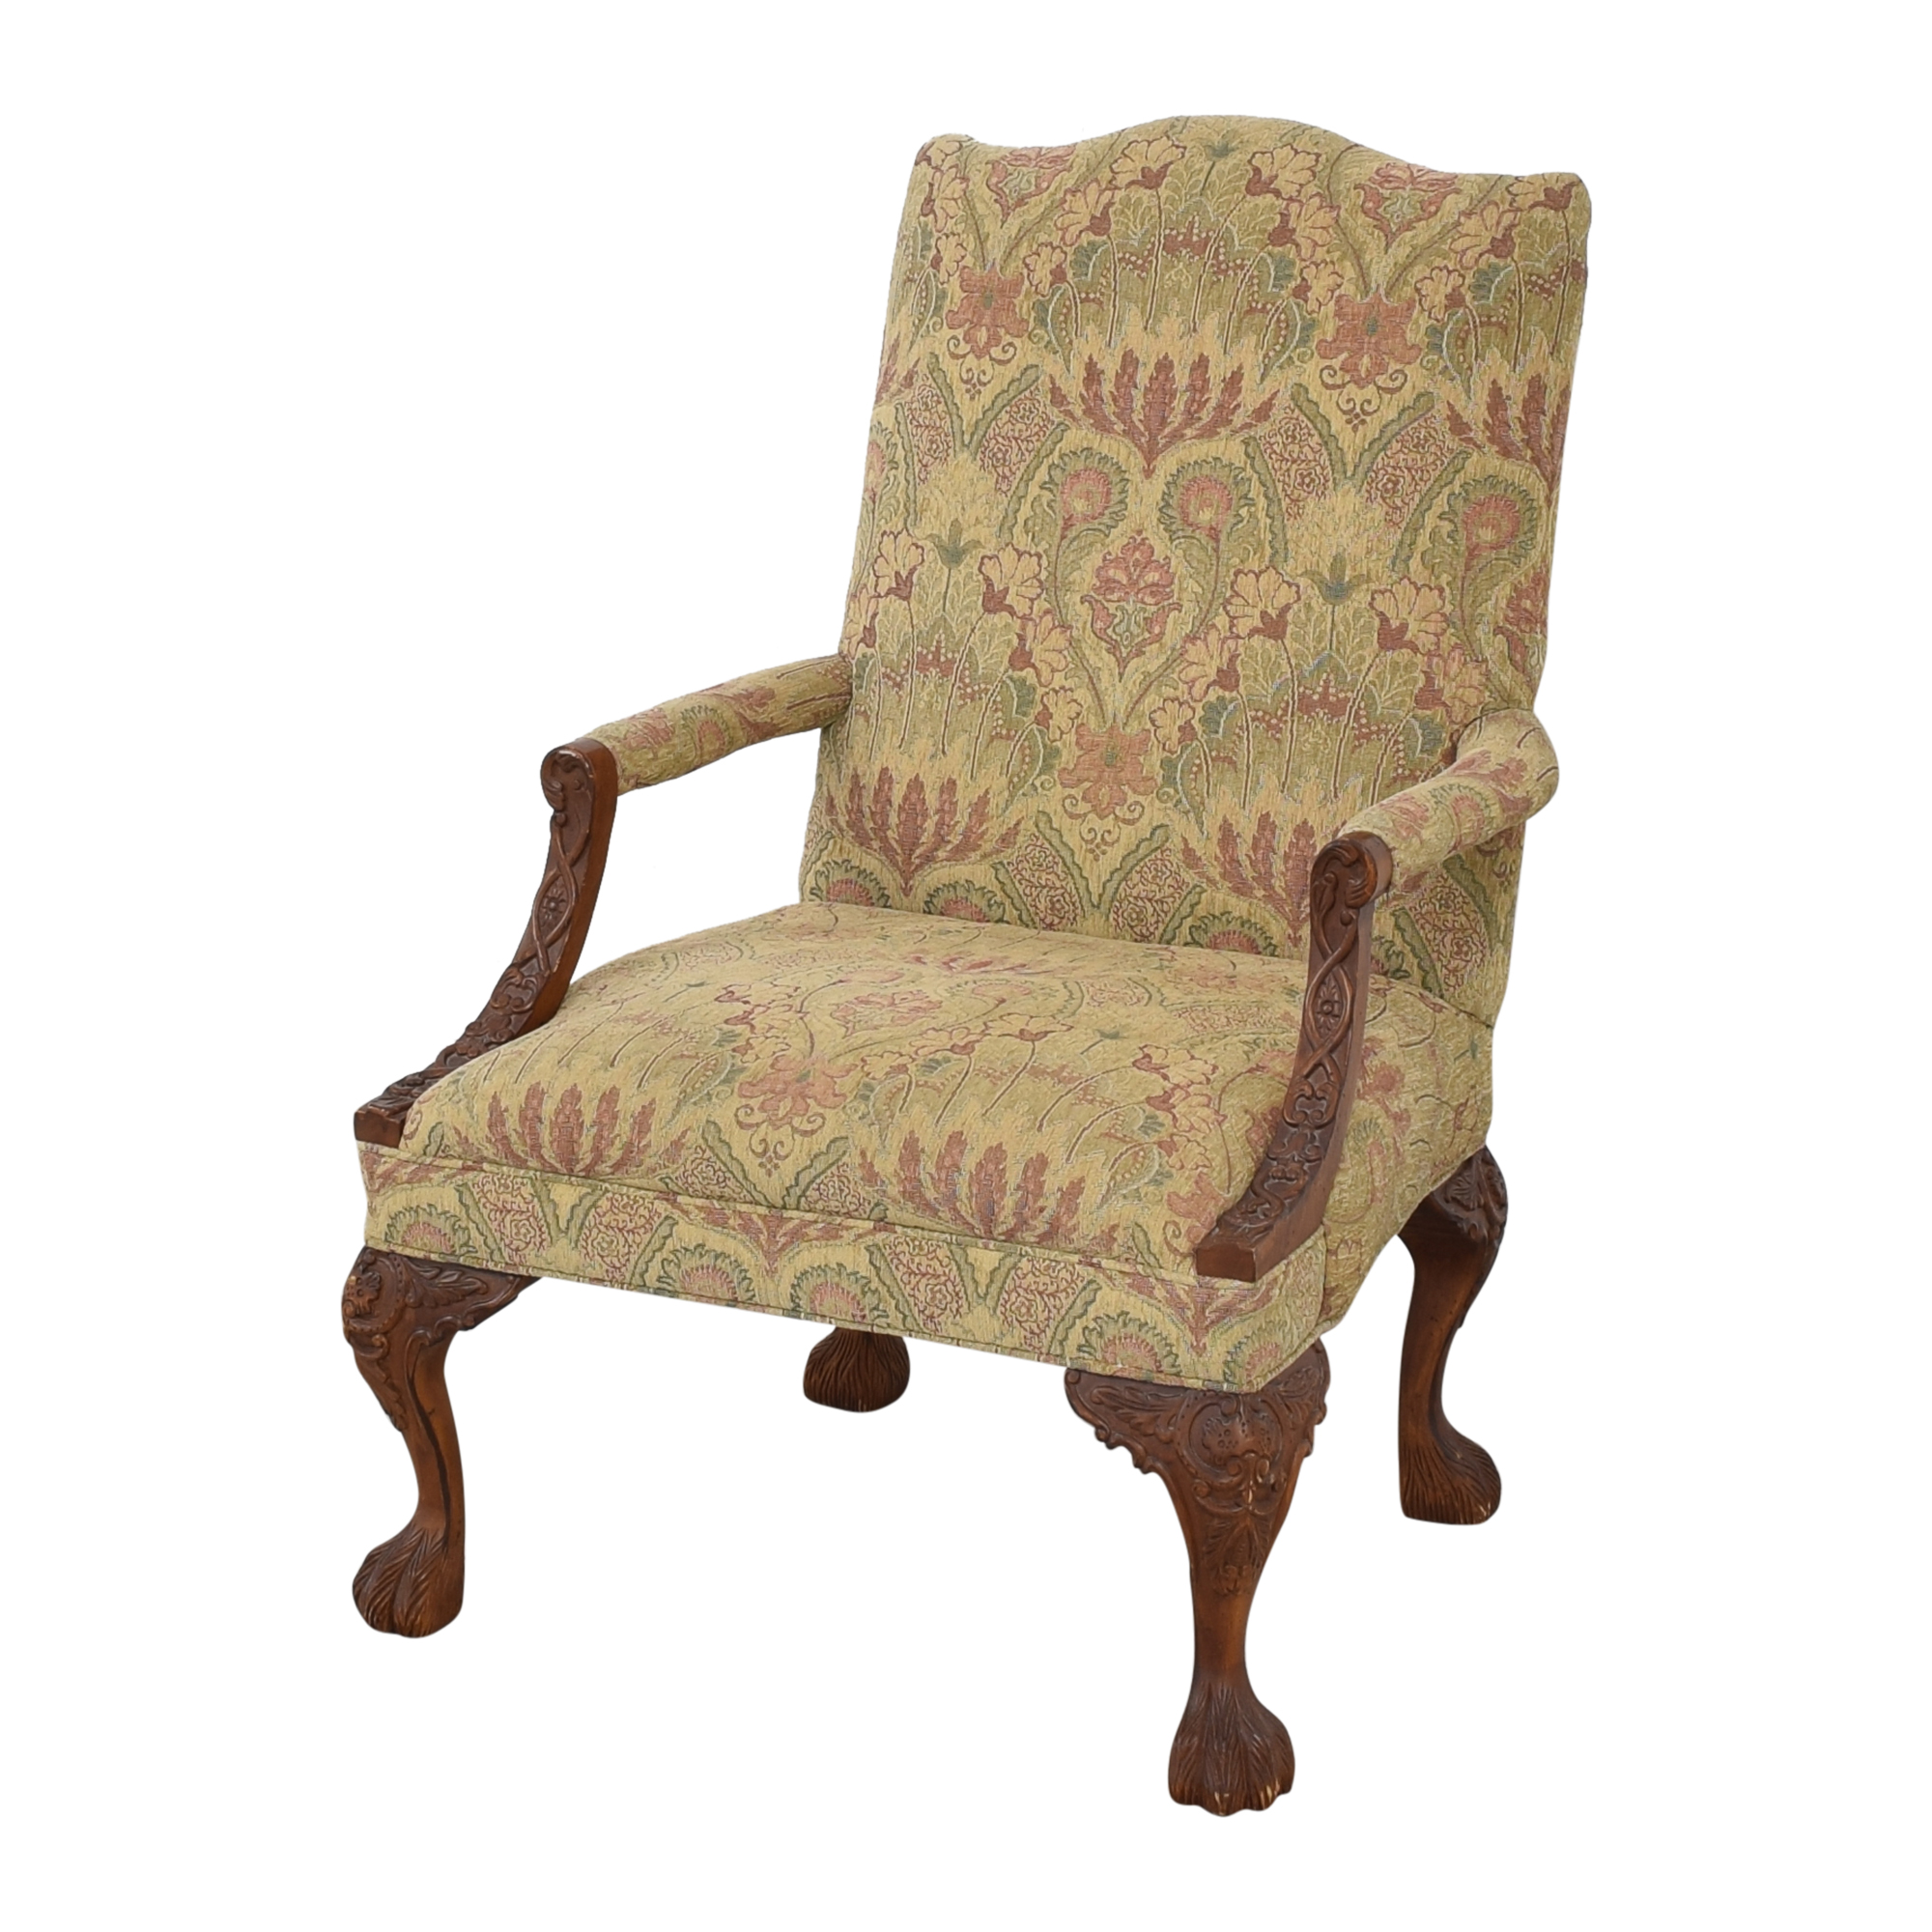 Sam Moore Sam Moore Tibetan Tapestry Old World Finish Carved Wood Chairs nj